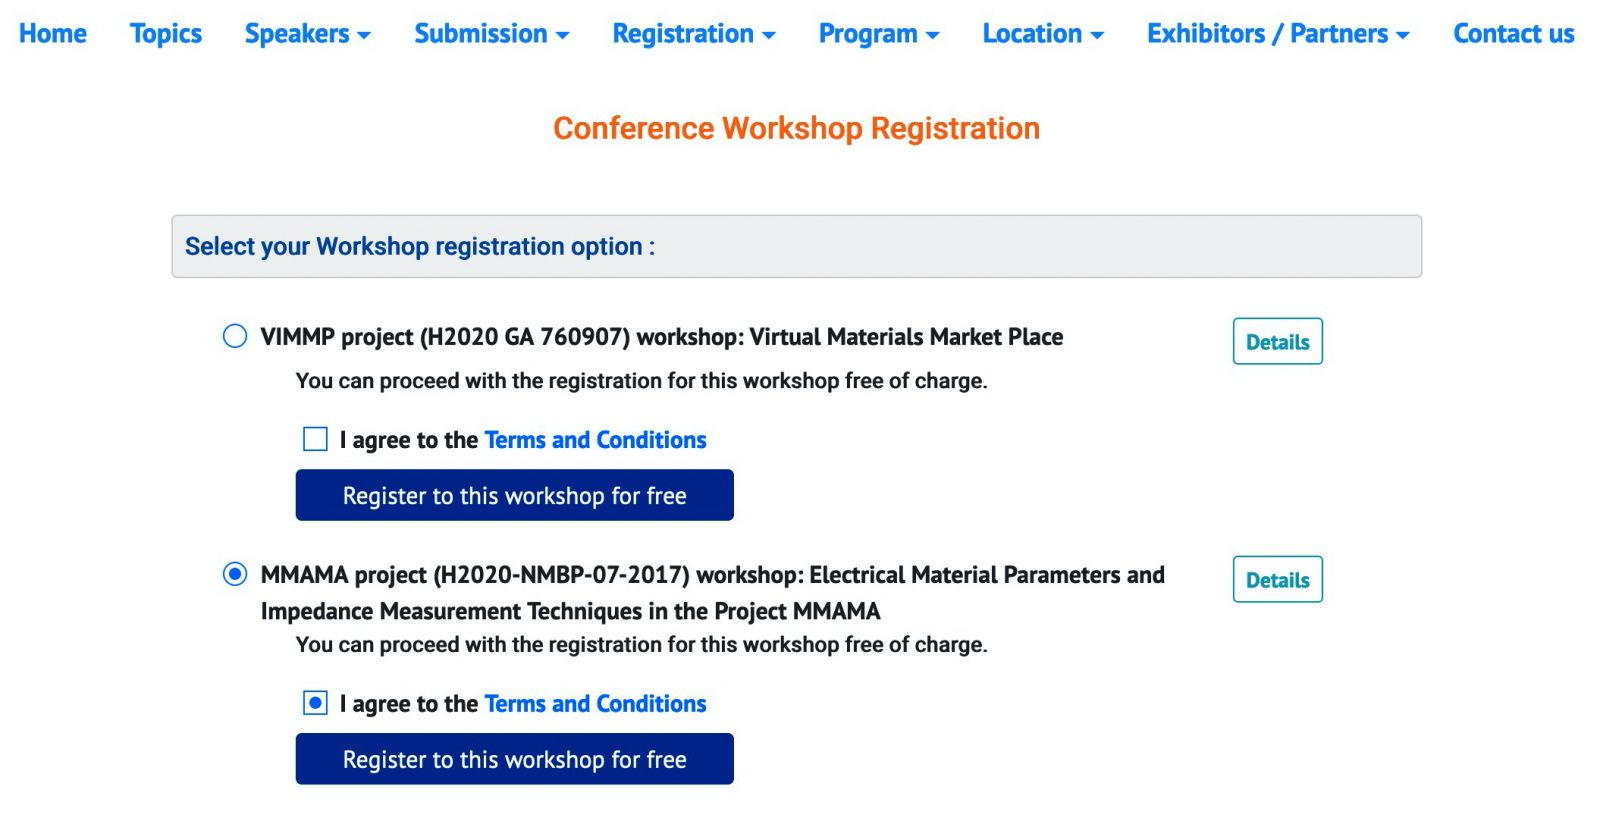 Conference workshop registration page